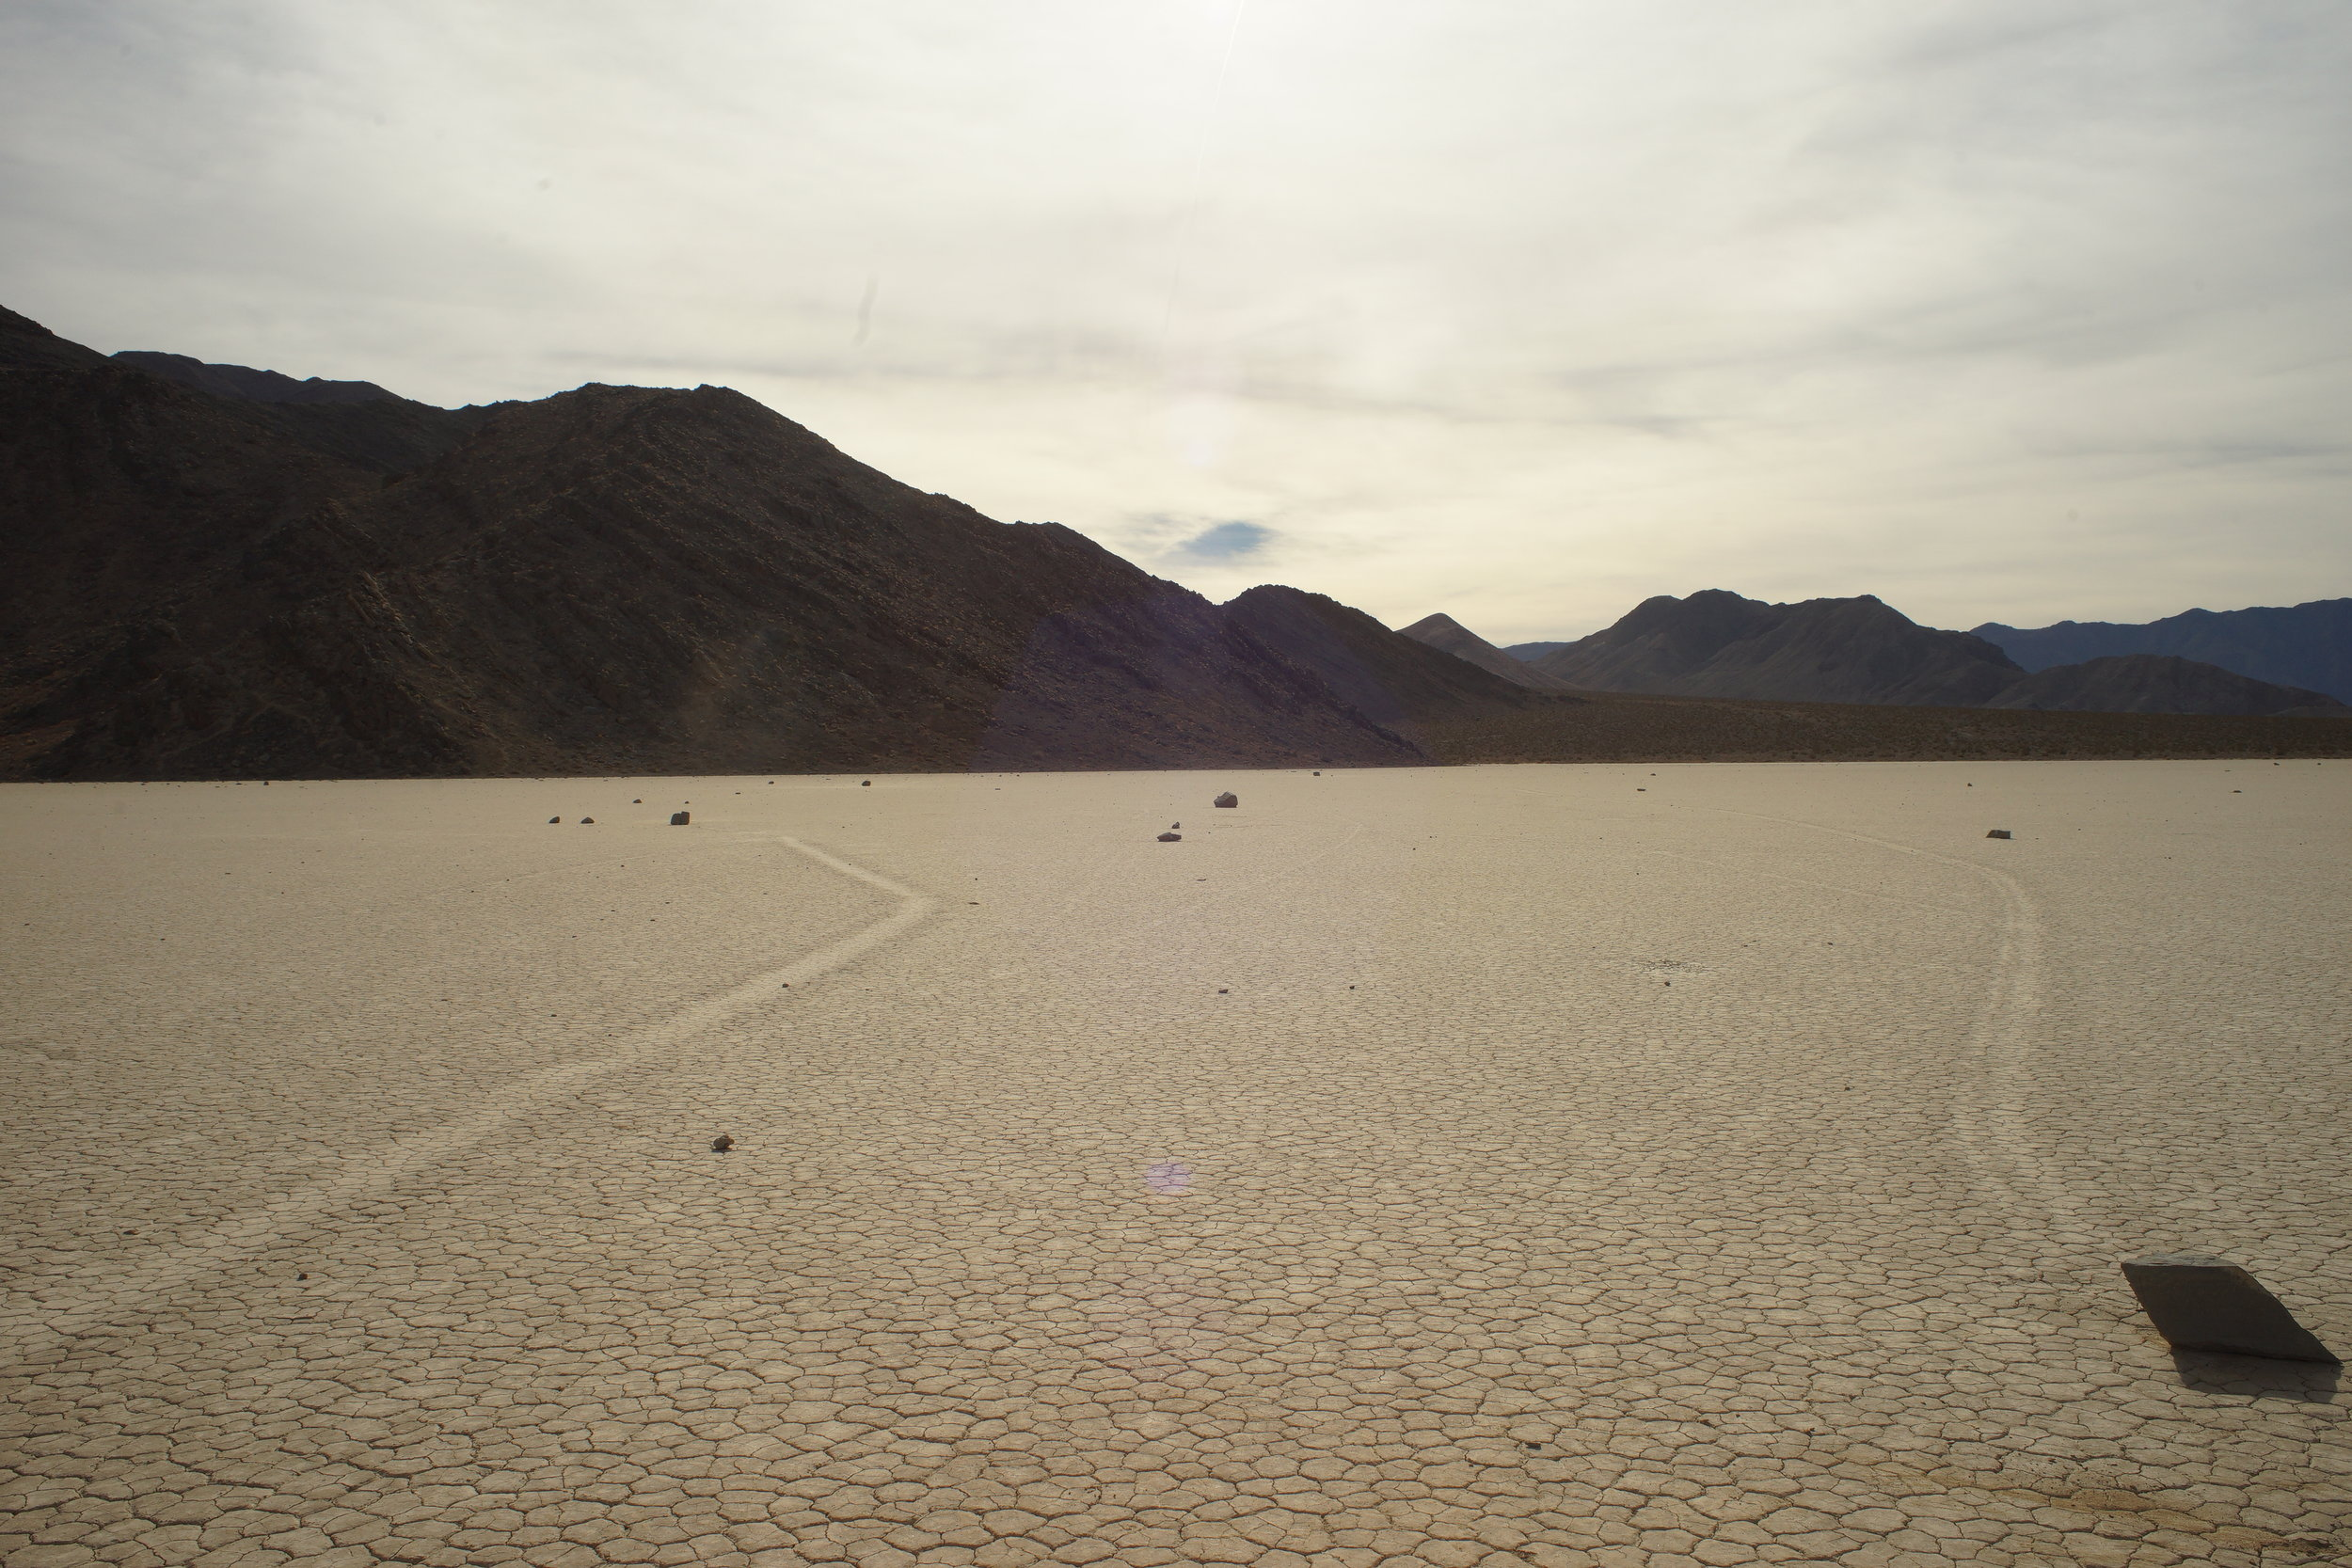 Moving rocks in the Racetrack, Death Valley.